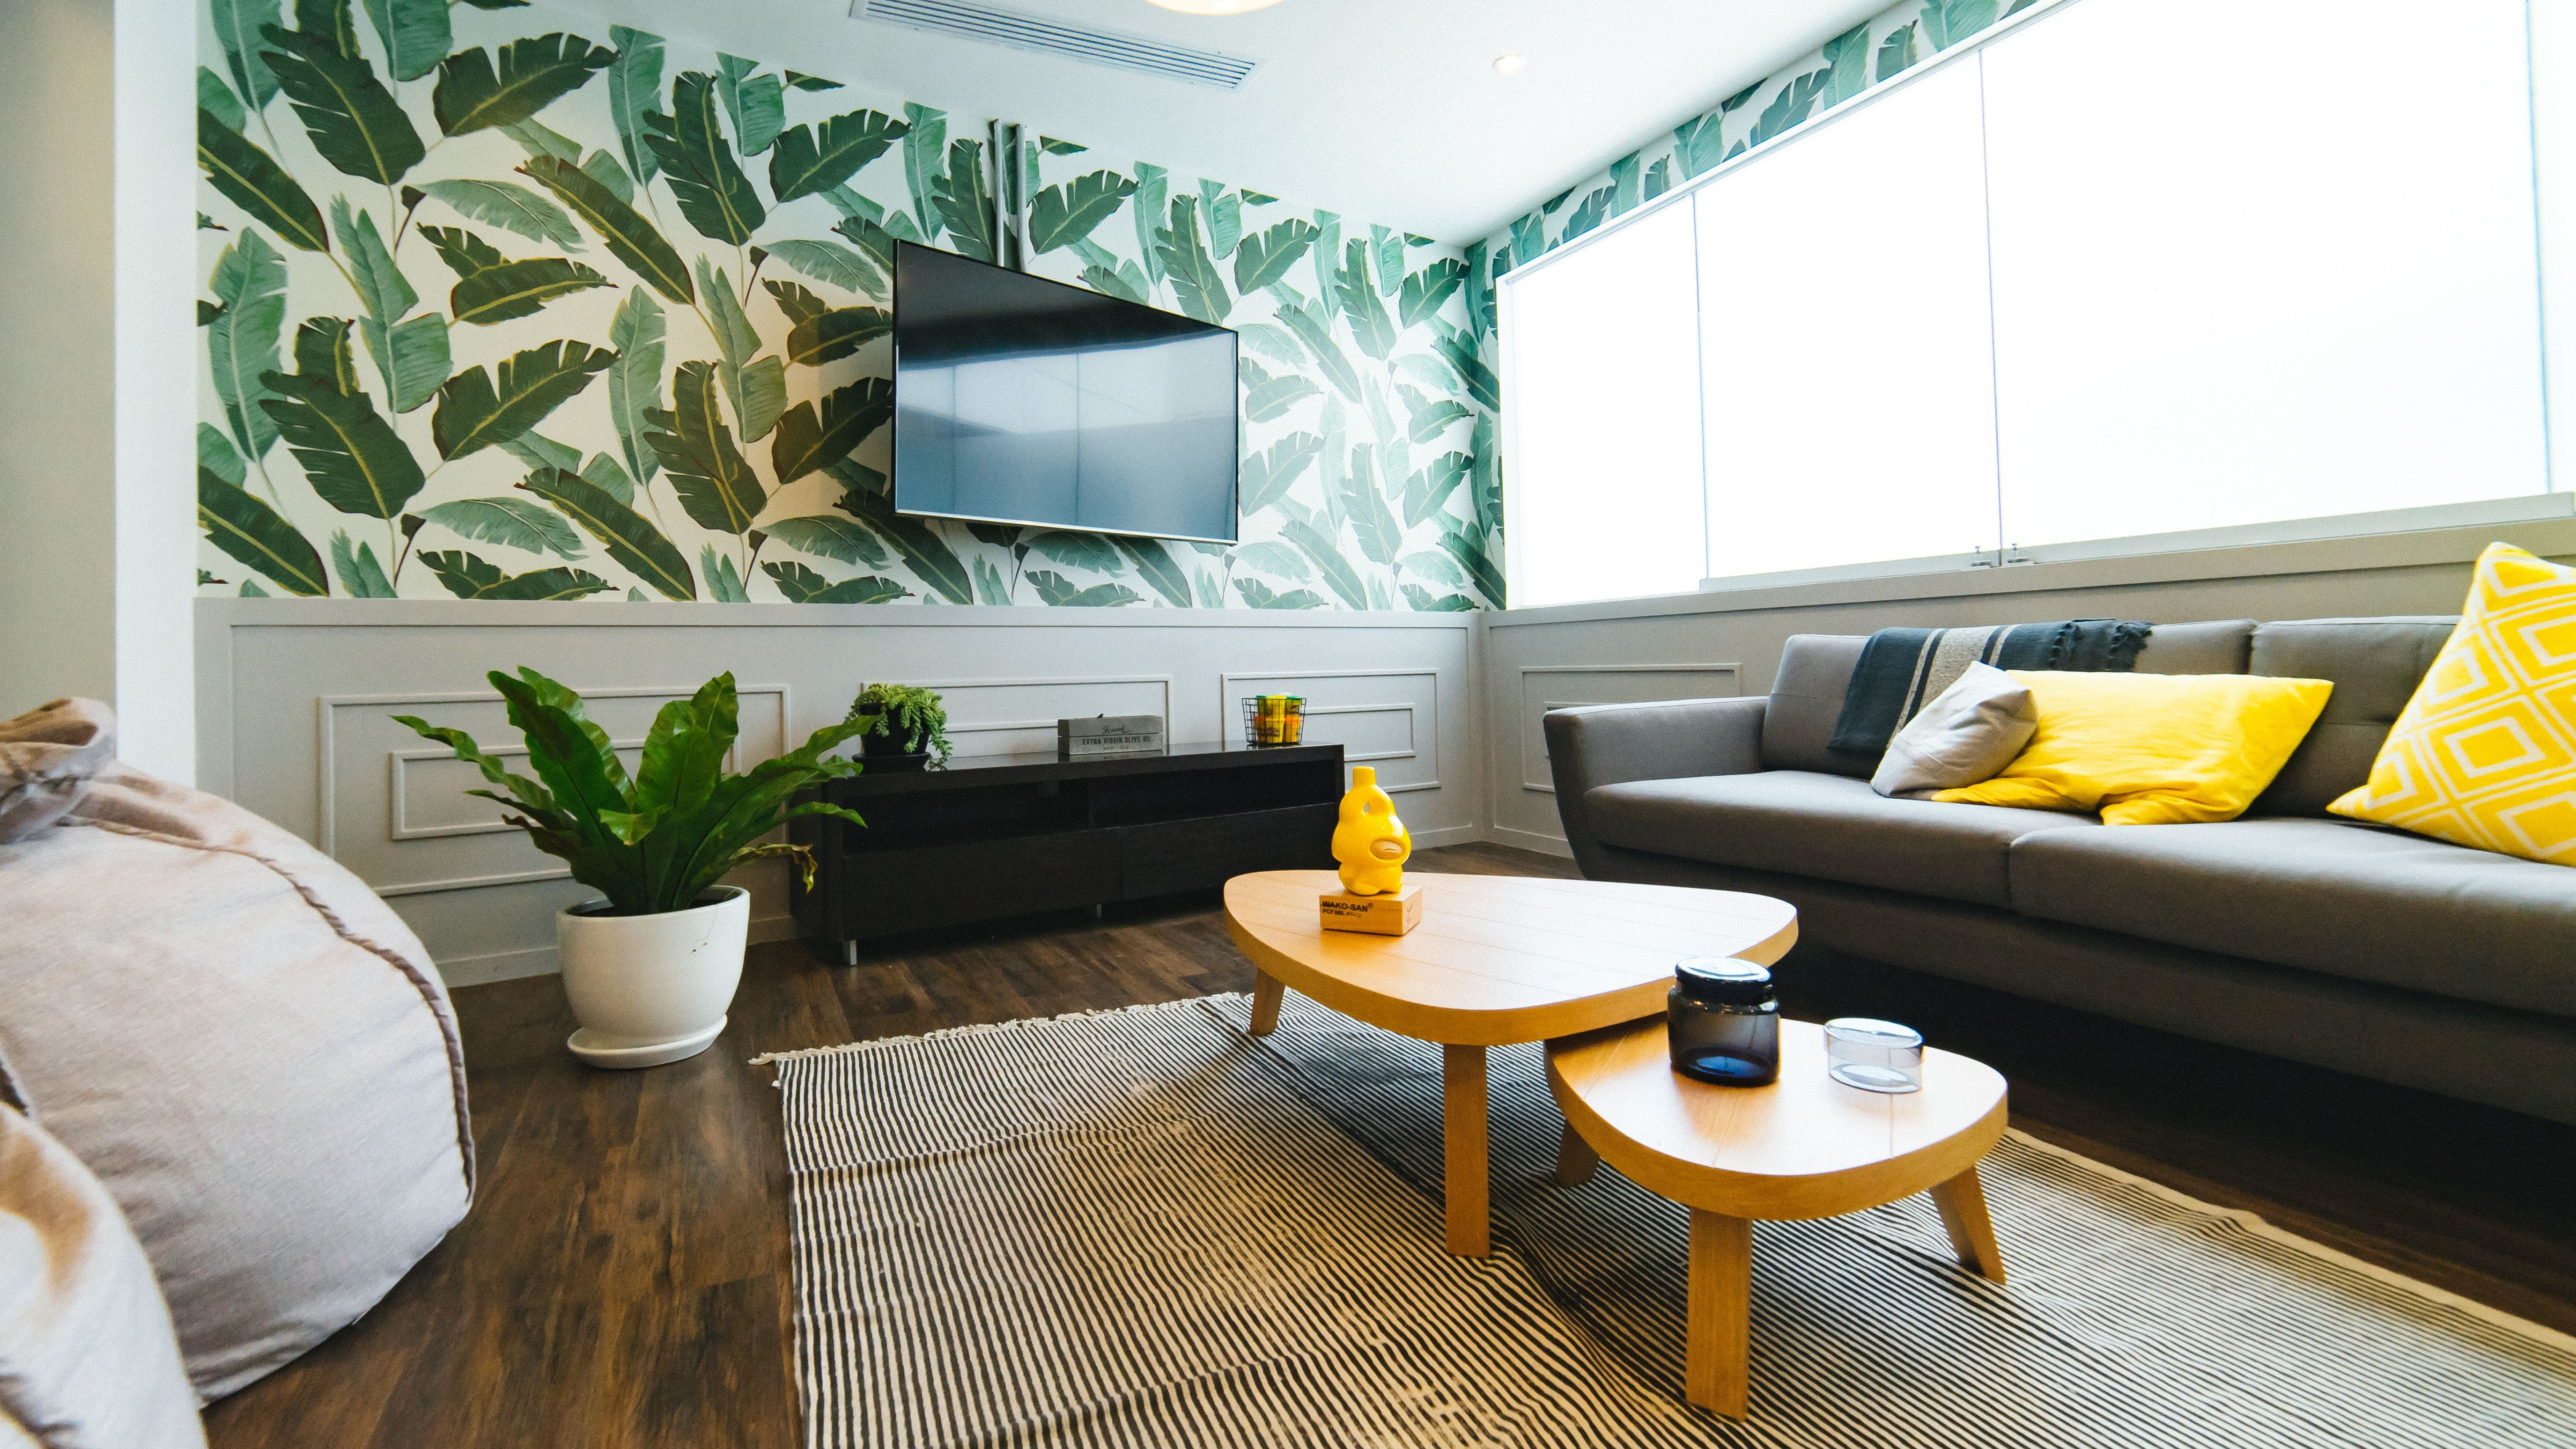 15 Tips To Make A Small Hdb Flats And Private Condos Look Larger